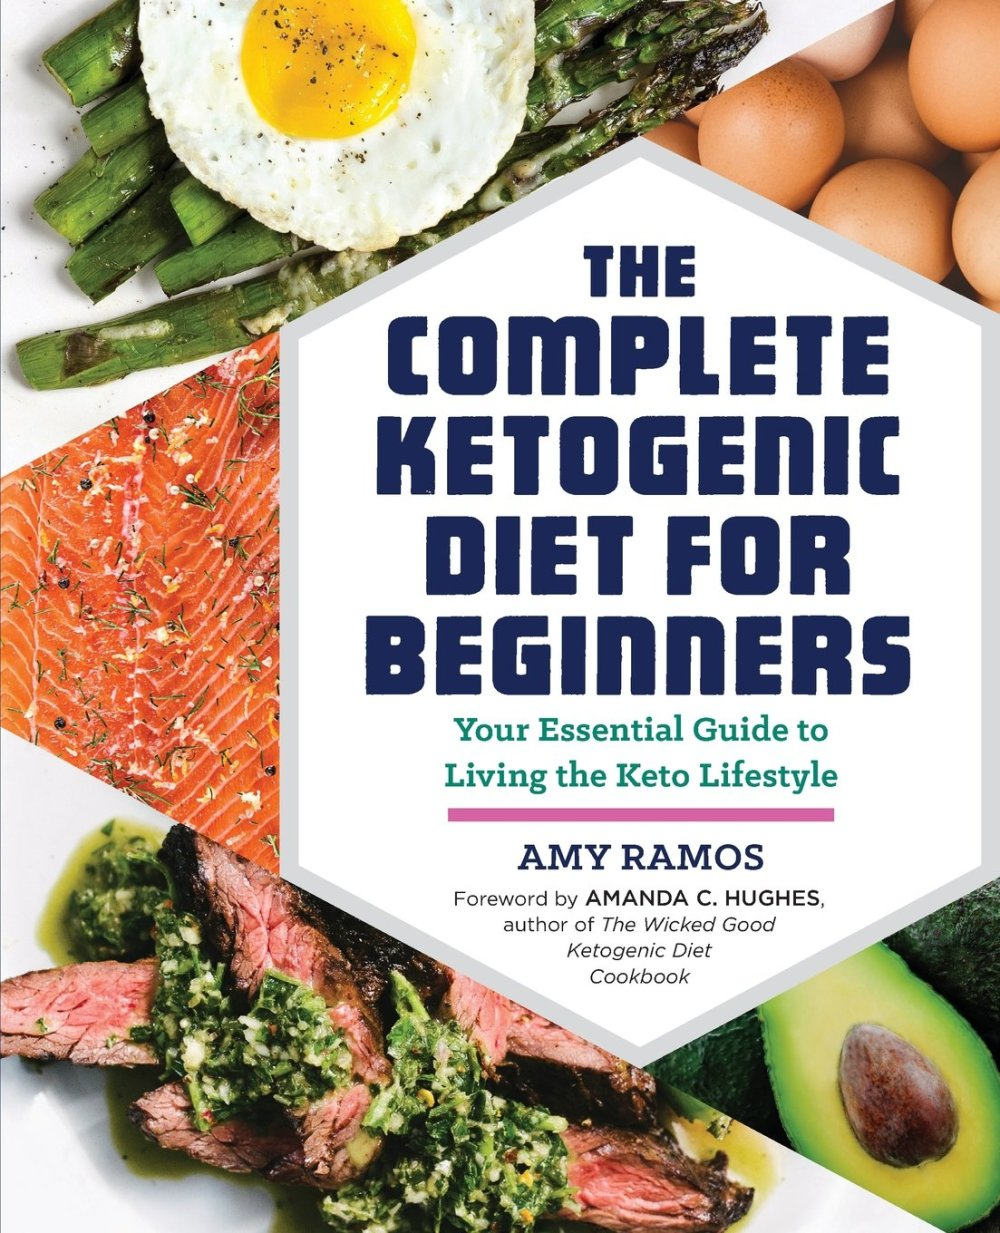 The Complete Ketogenic Diet for Beginners: Your Essential Guide to Living the Keto Lifestyle